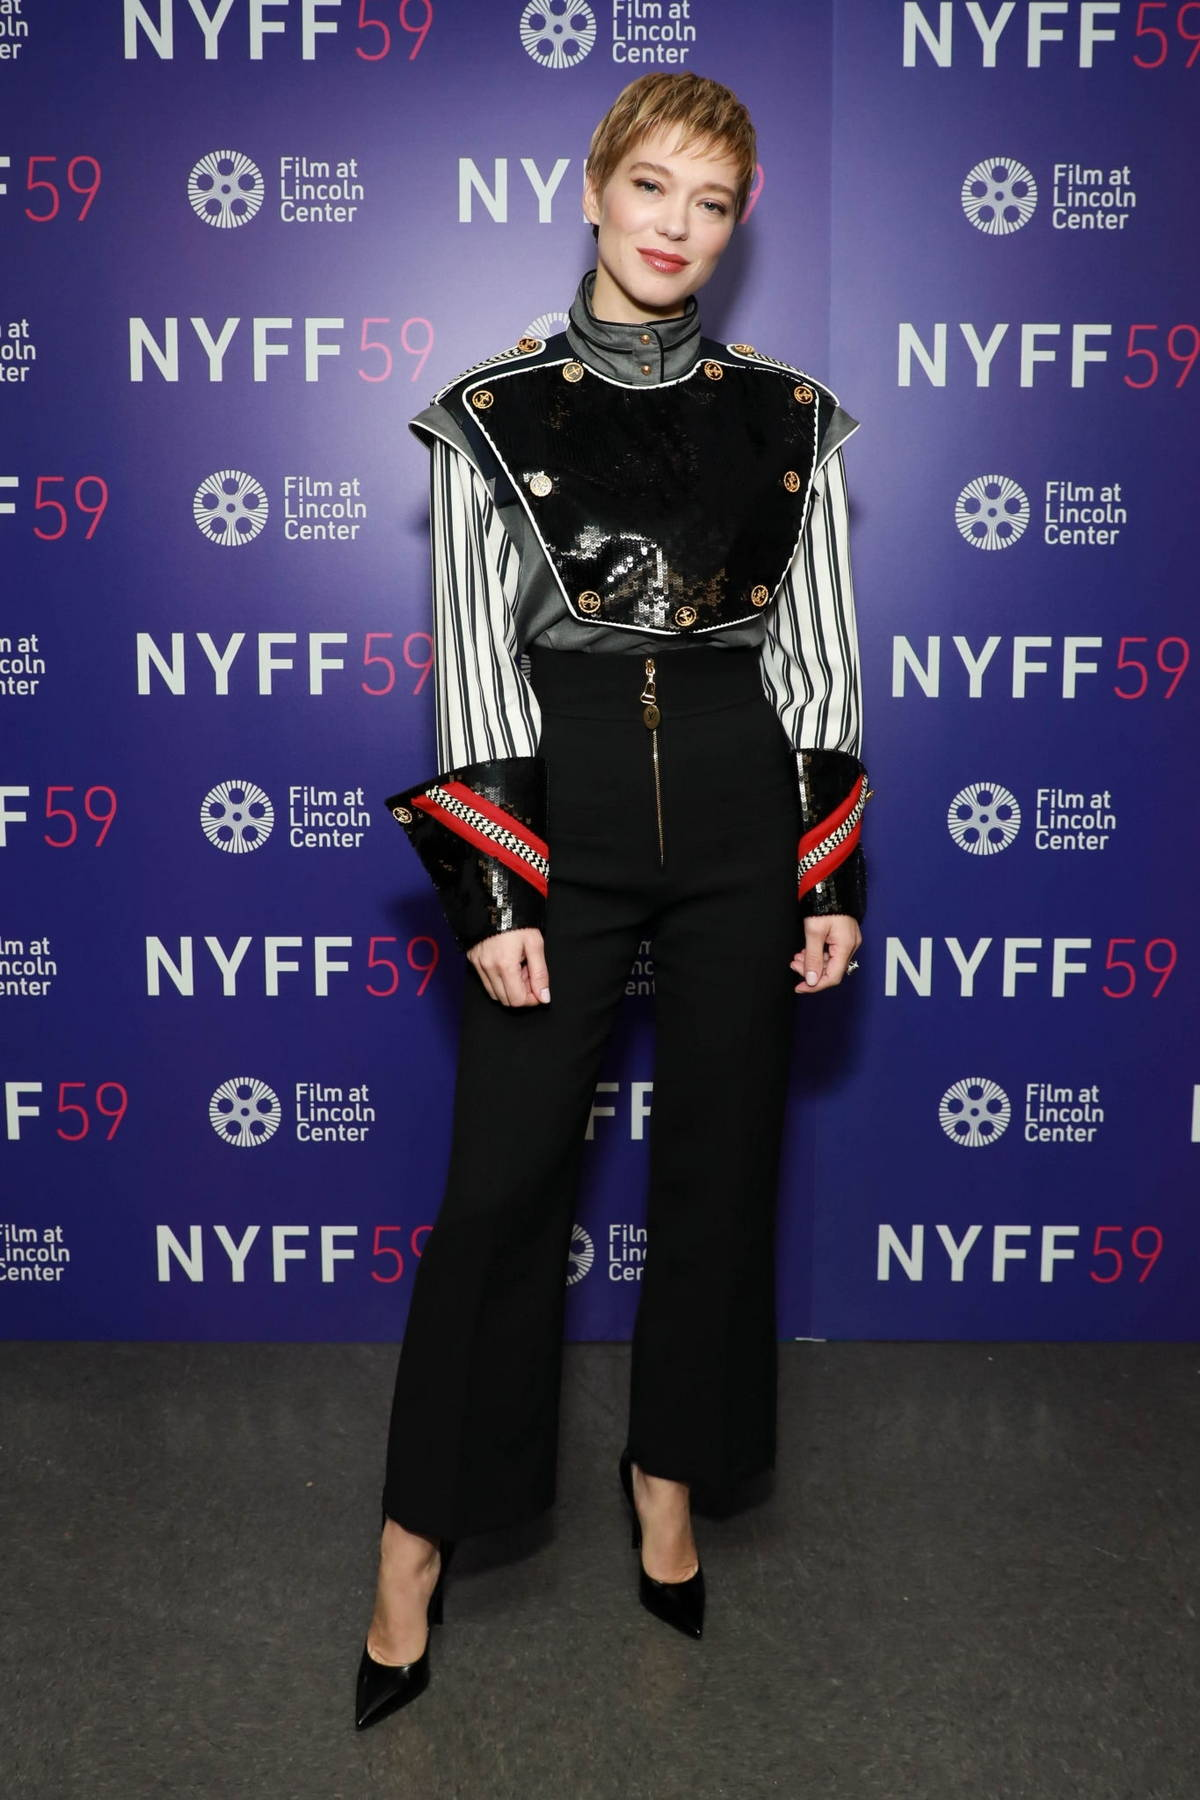 Lea Seydoux attends a screening of 'The French Dispatch' during the 59th New York Film Festival in New York City